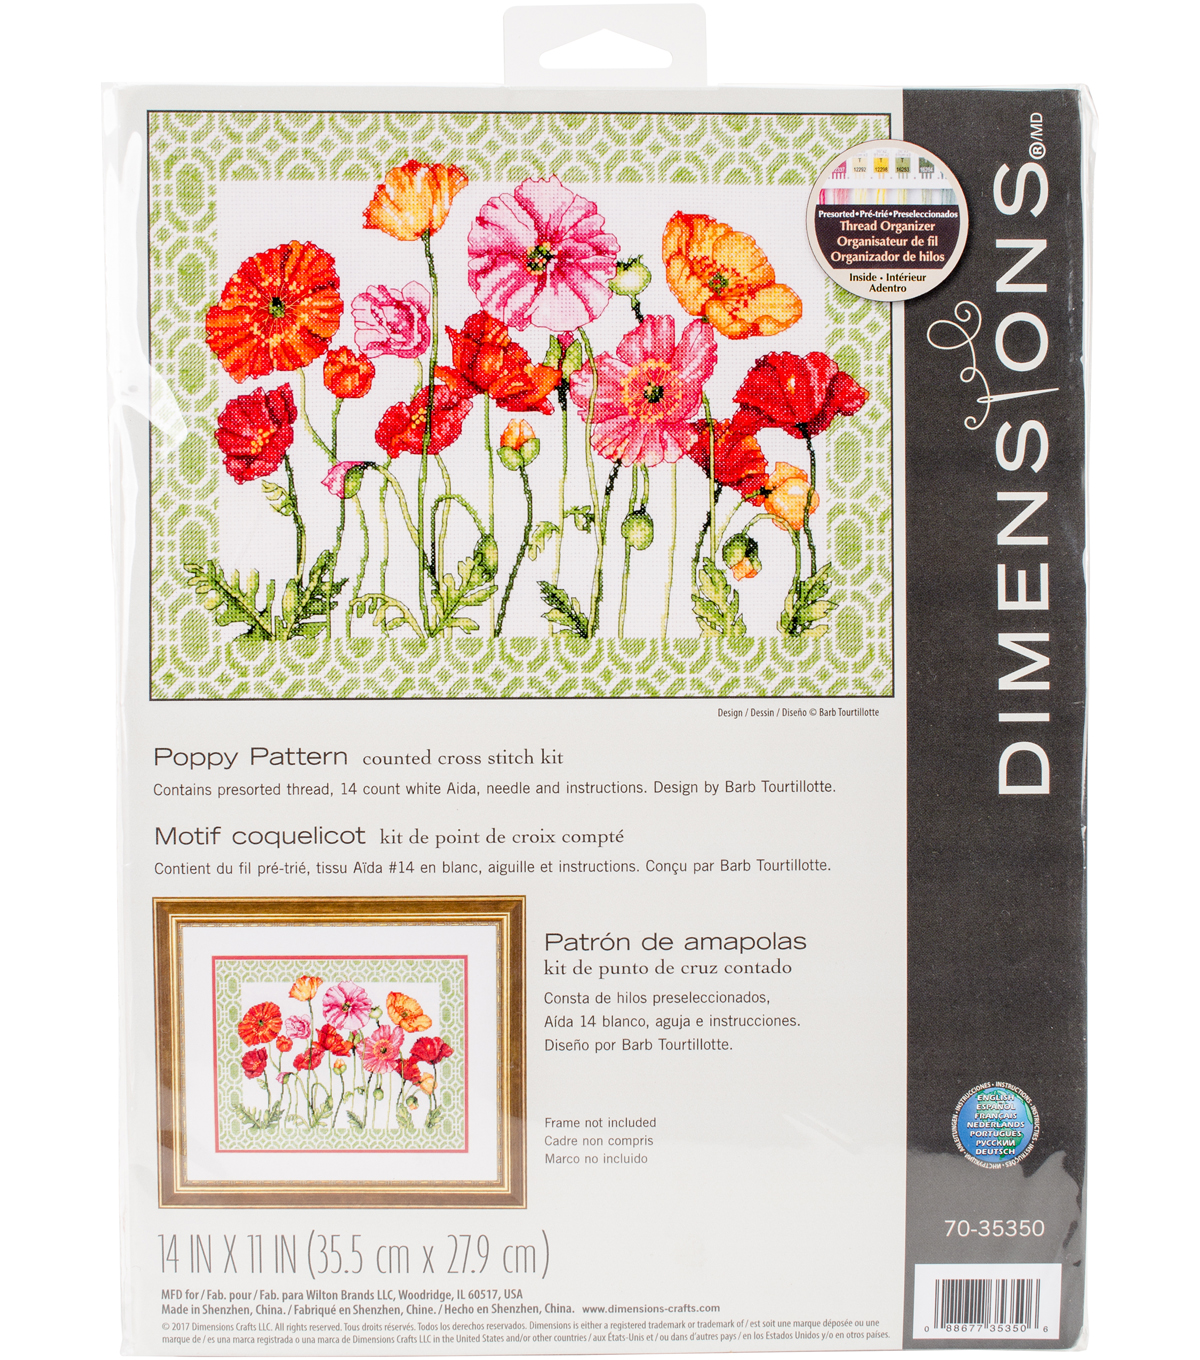 Poppy Pattern Counted Cross Stitch Kit-14\u0022X11\u0022 14 Count